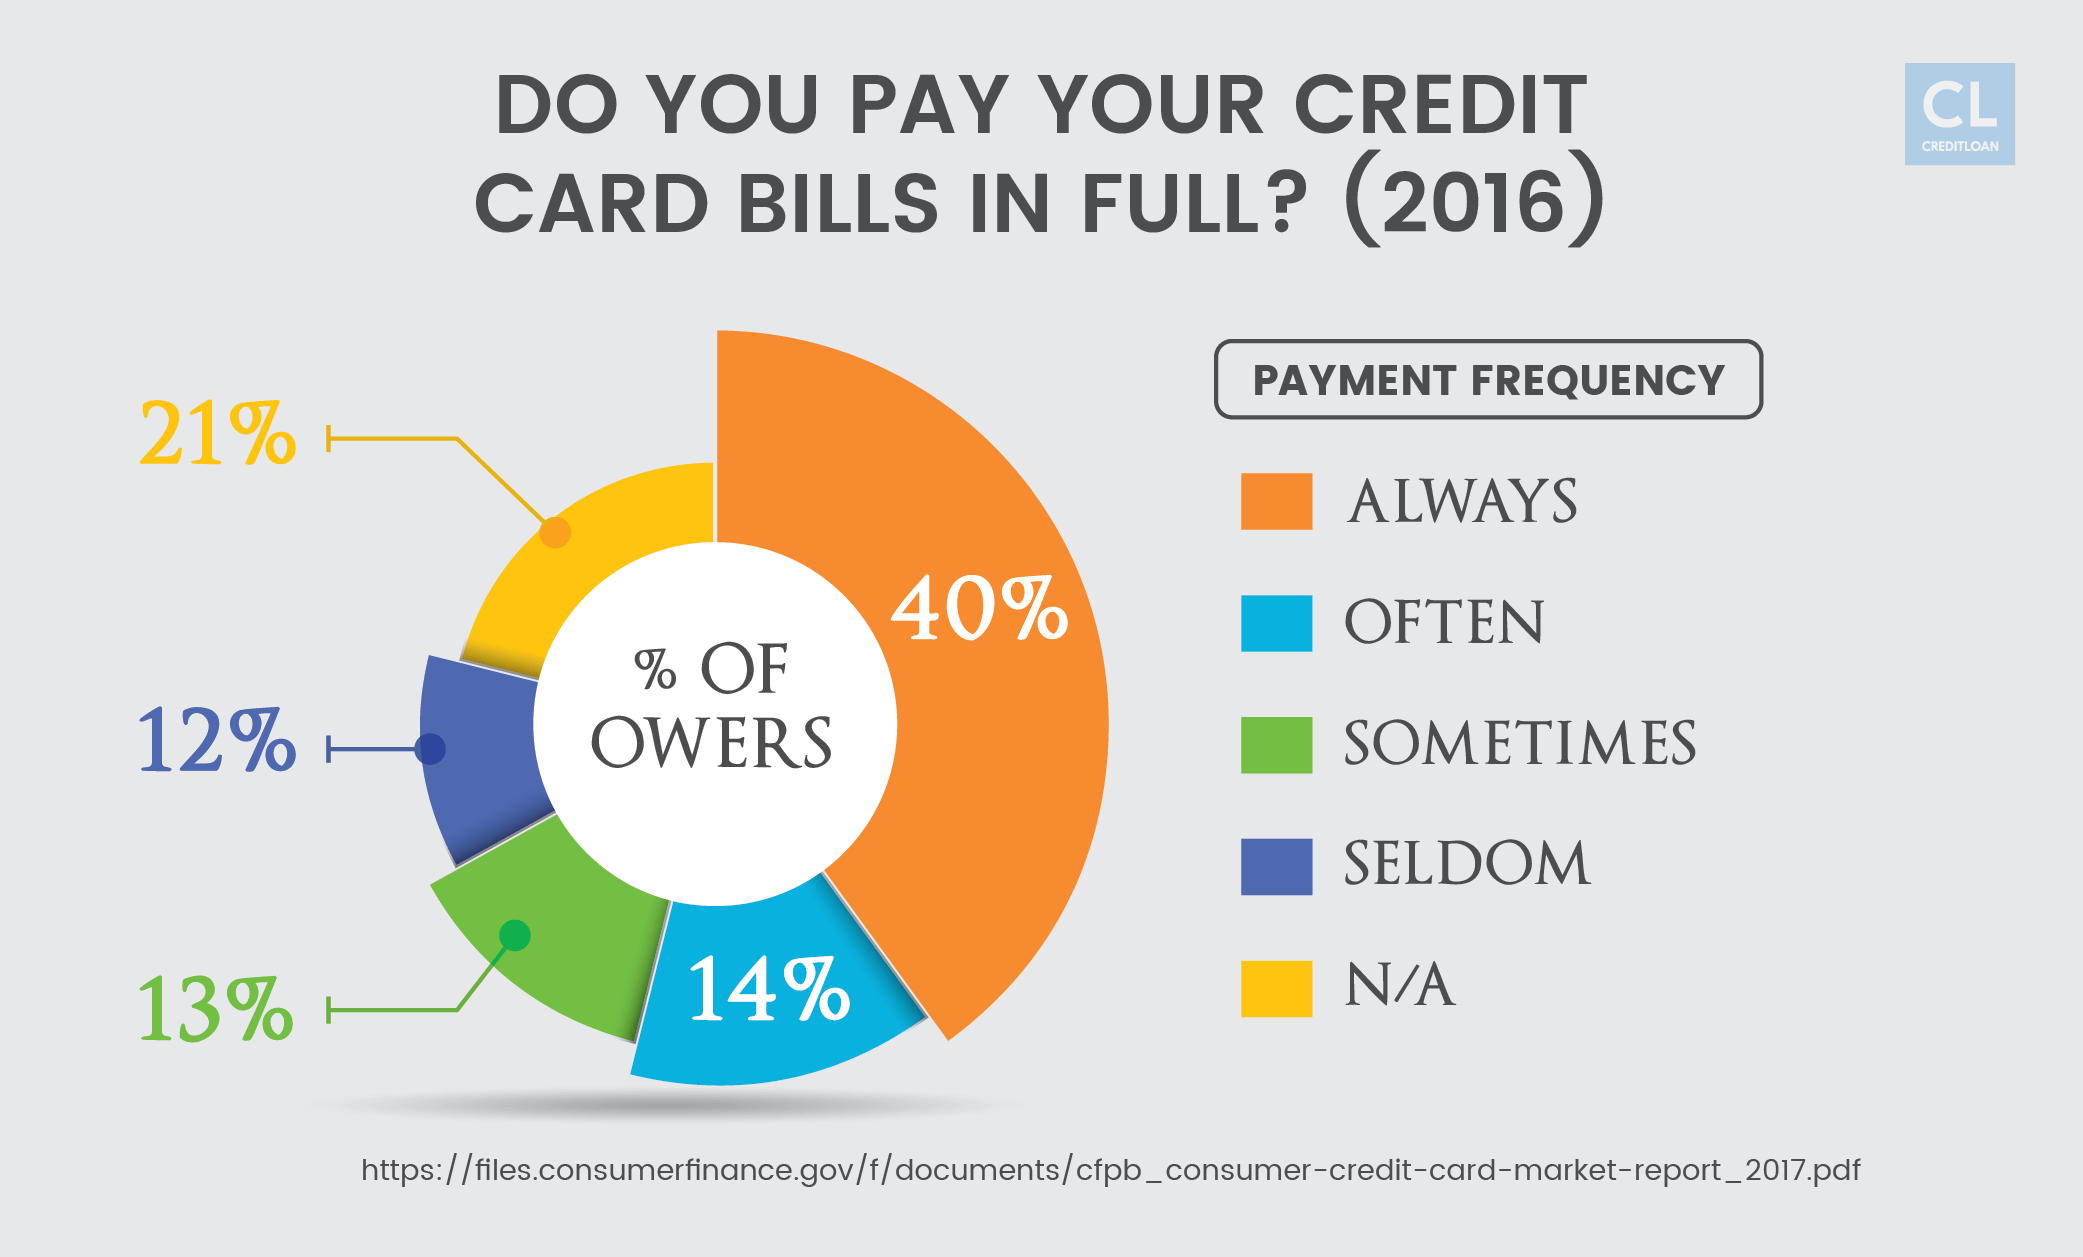 Frequency of Paying Credit Card Bills in Full